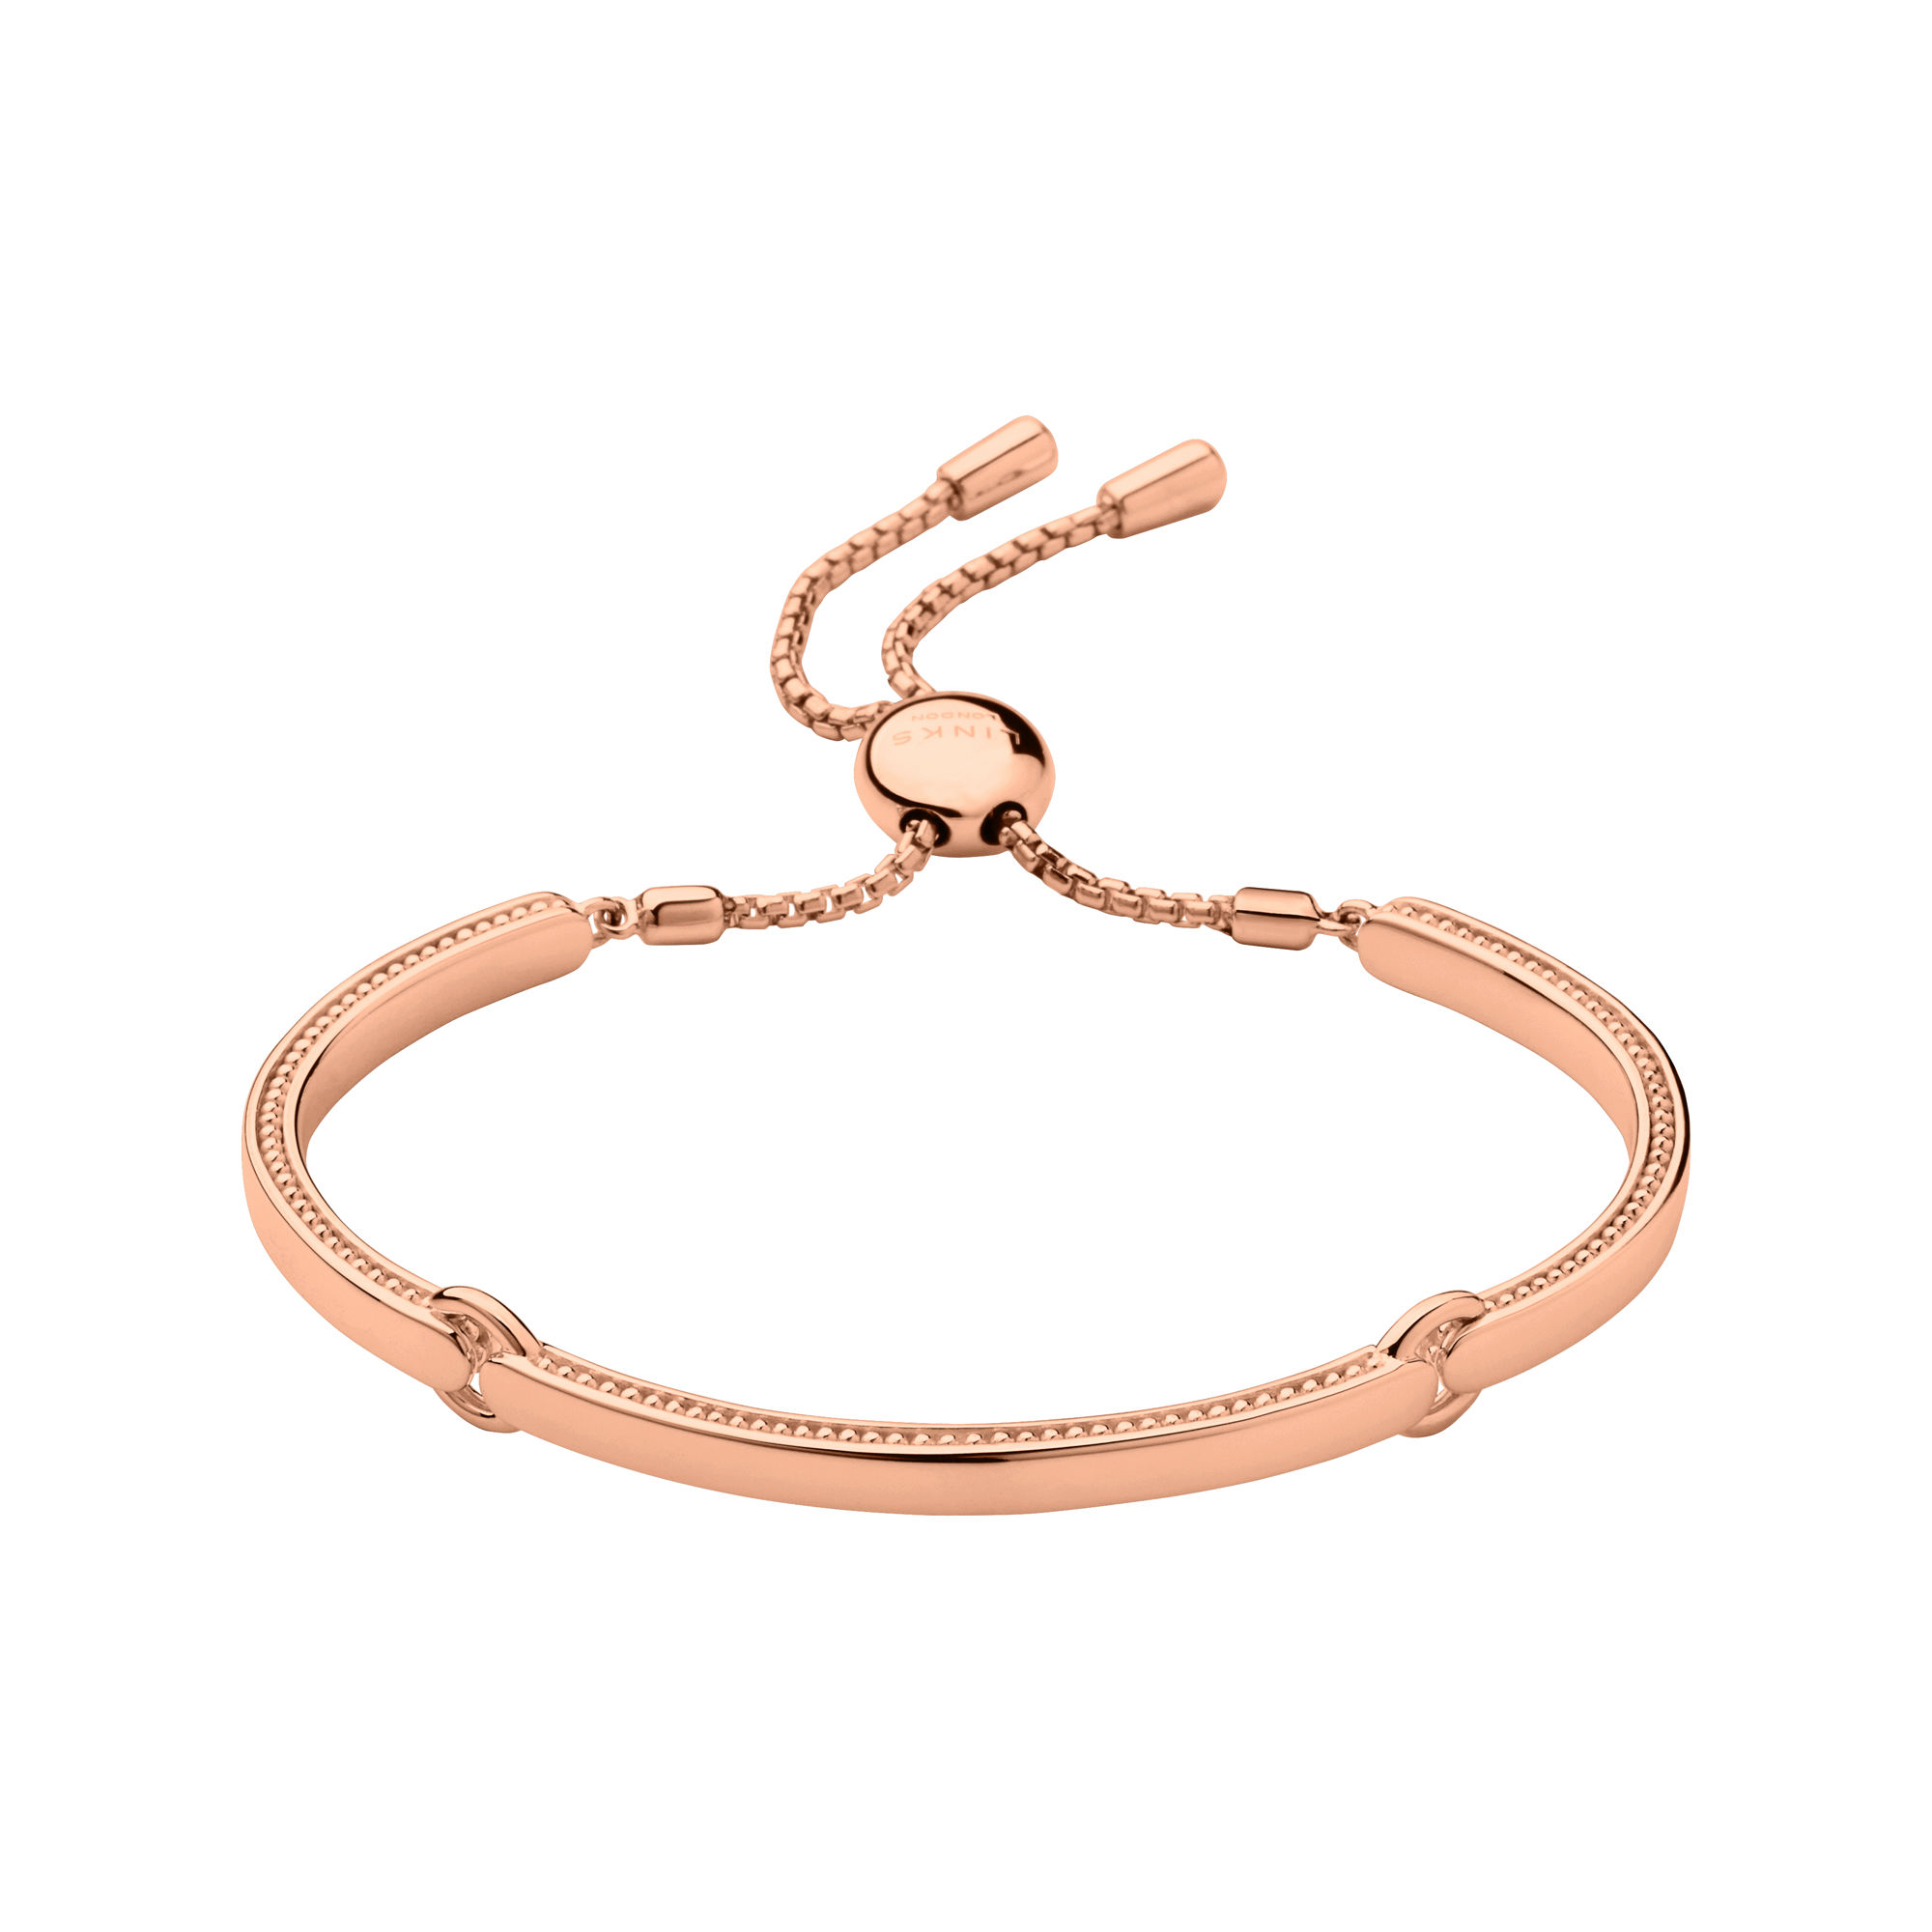 Solid 24K gold bracelet designs for ladies